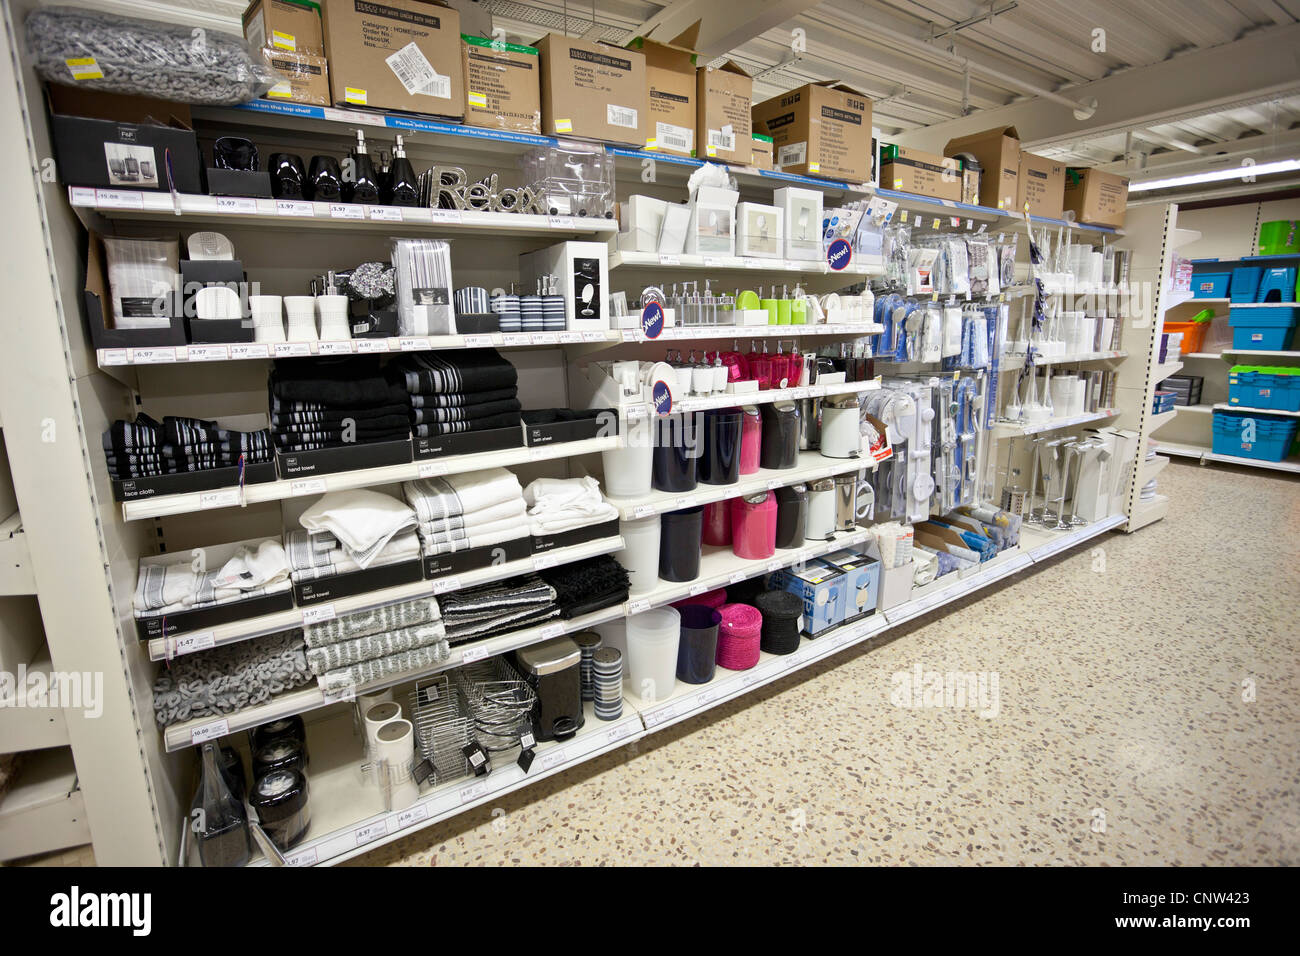 Superbe Bathroom Accessories And Toweling Shelves Of A Shop, London, England, UK